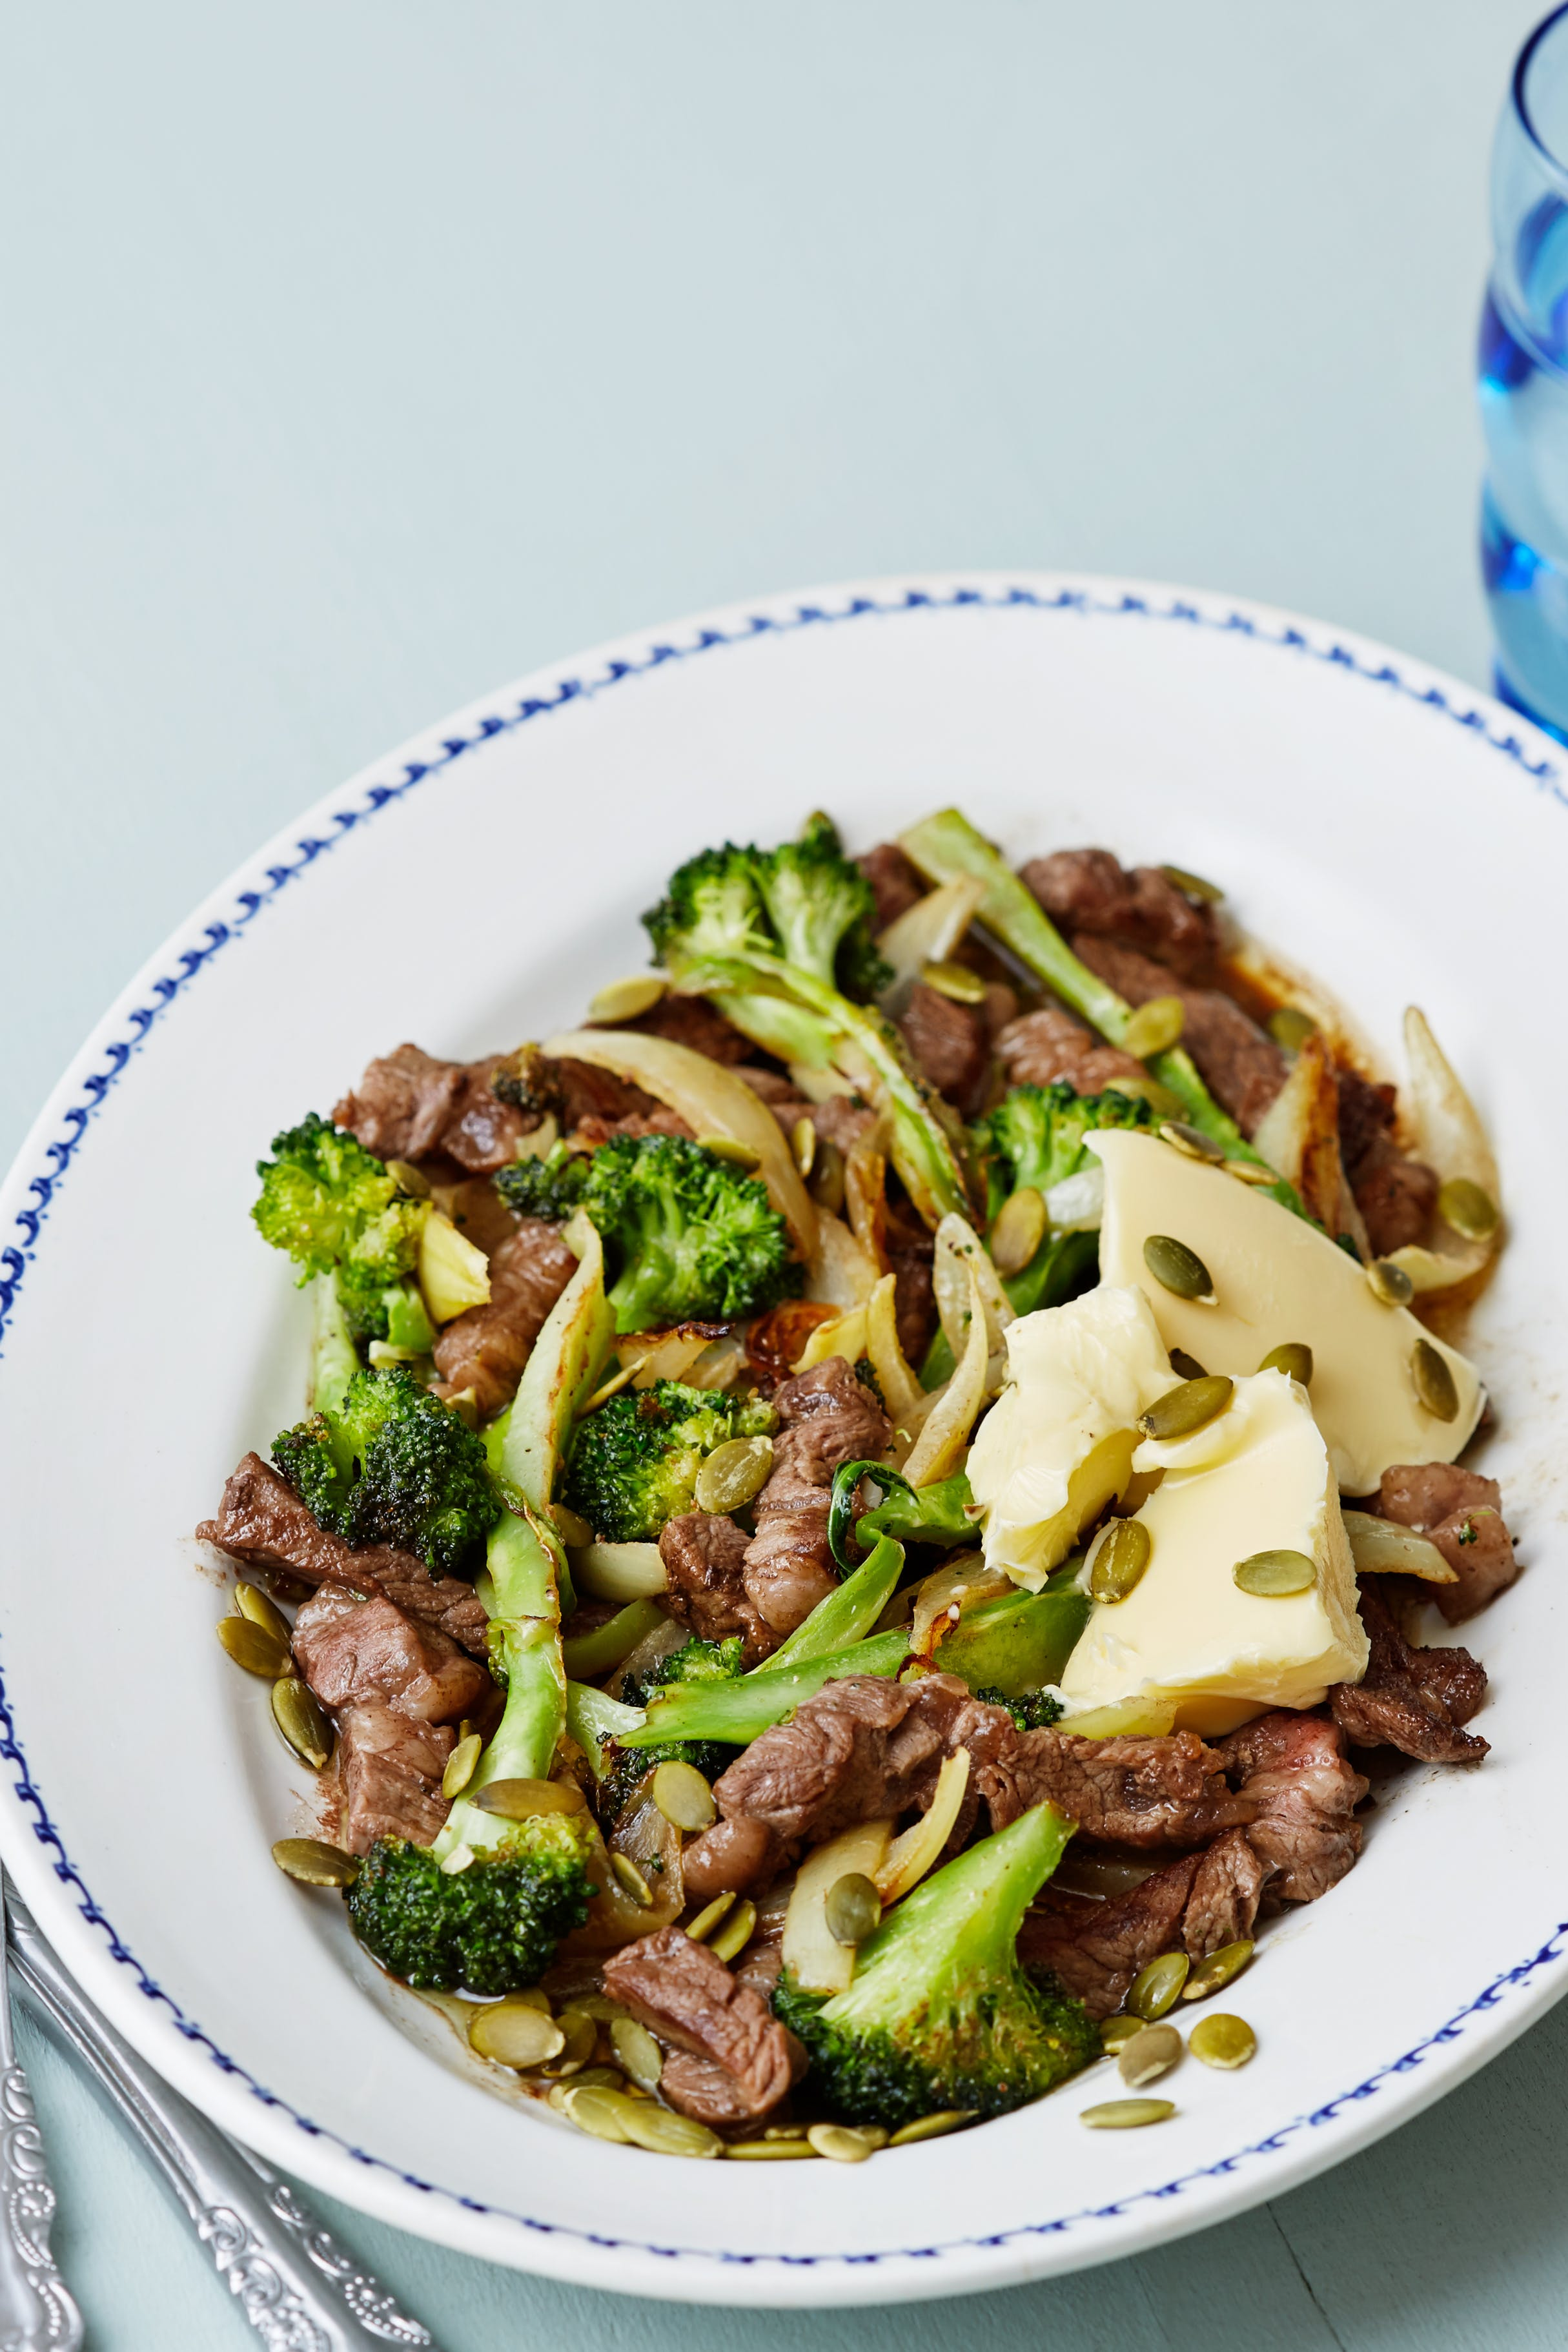 Keto steak and broccoli stir-fry